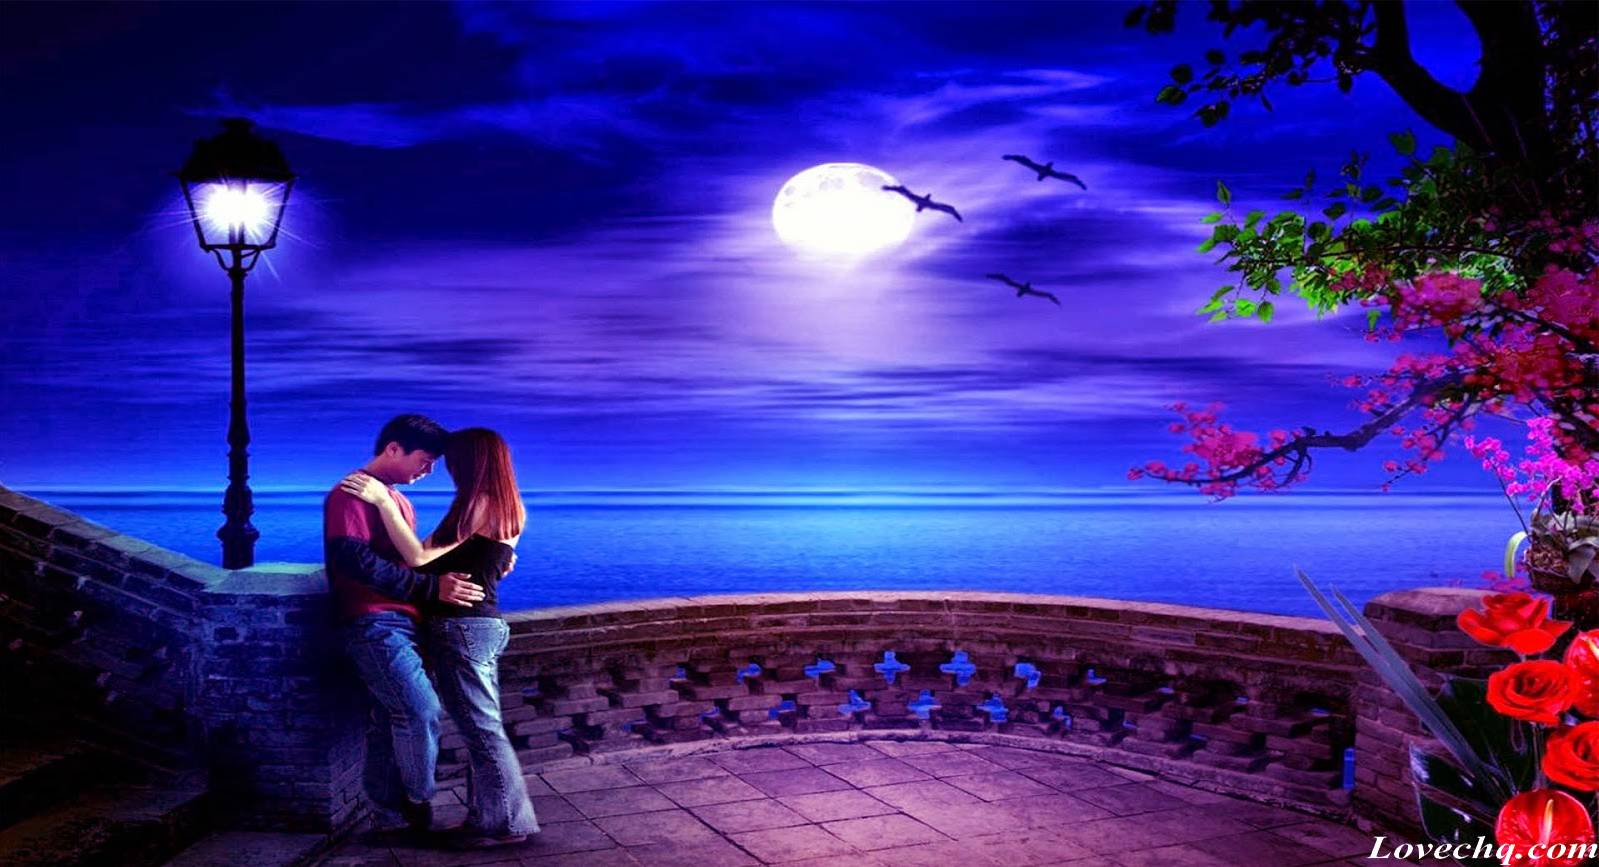 Free download romantic good night picture